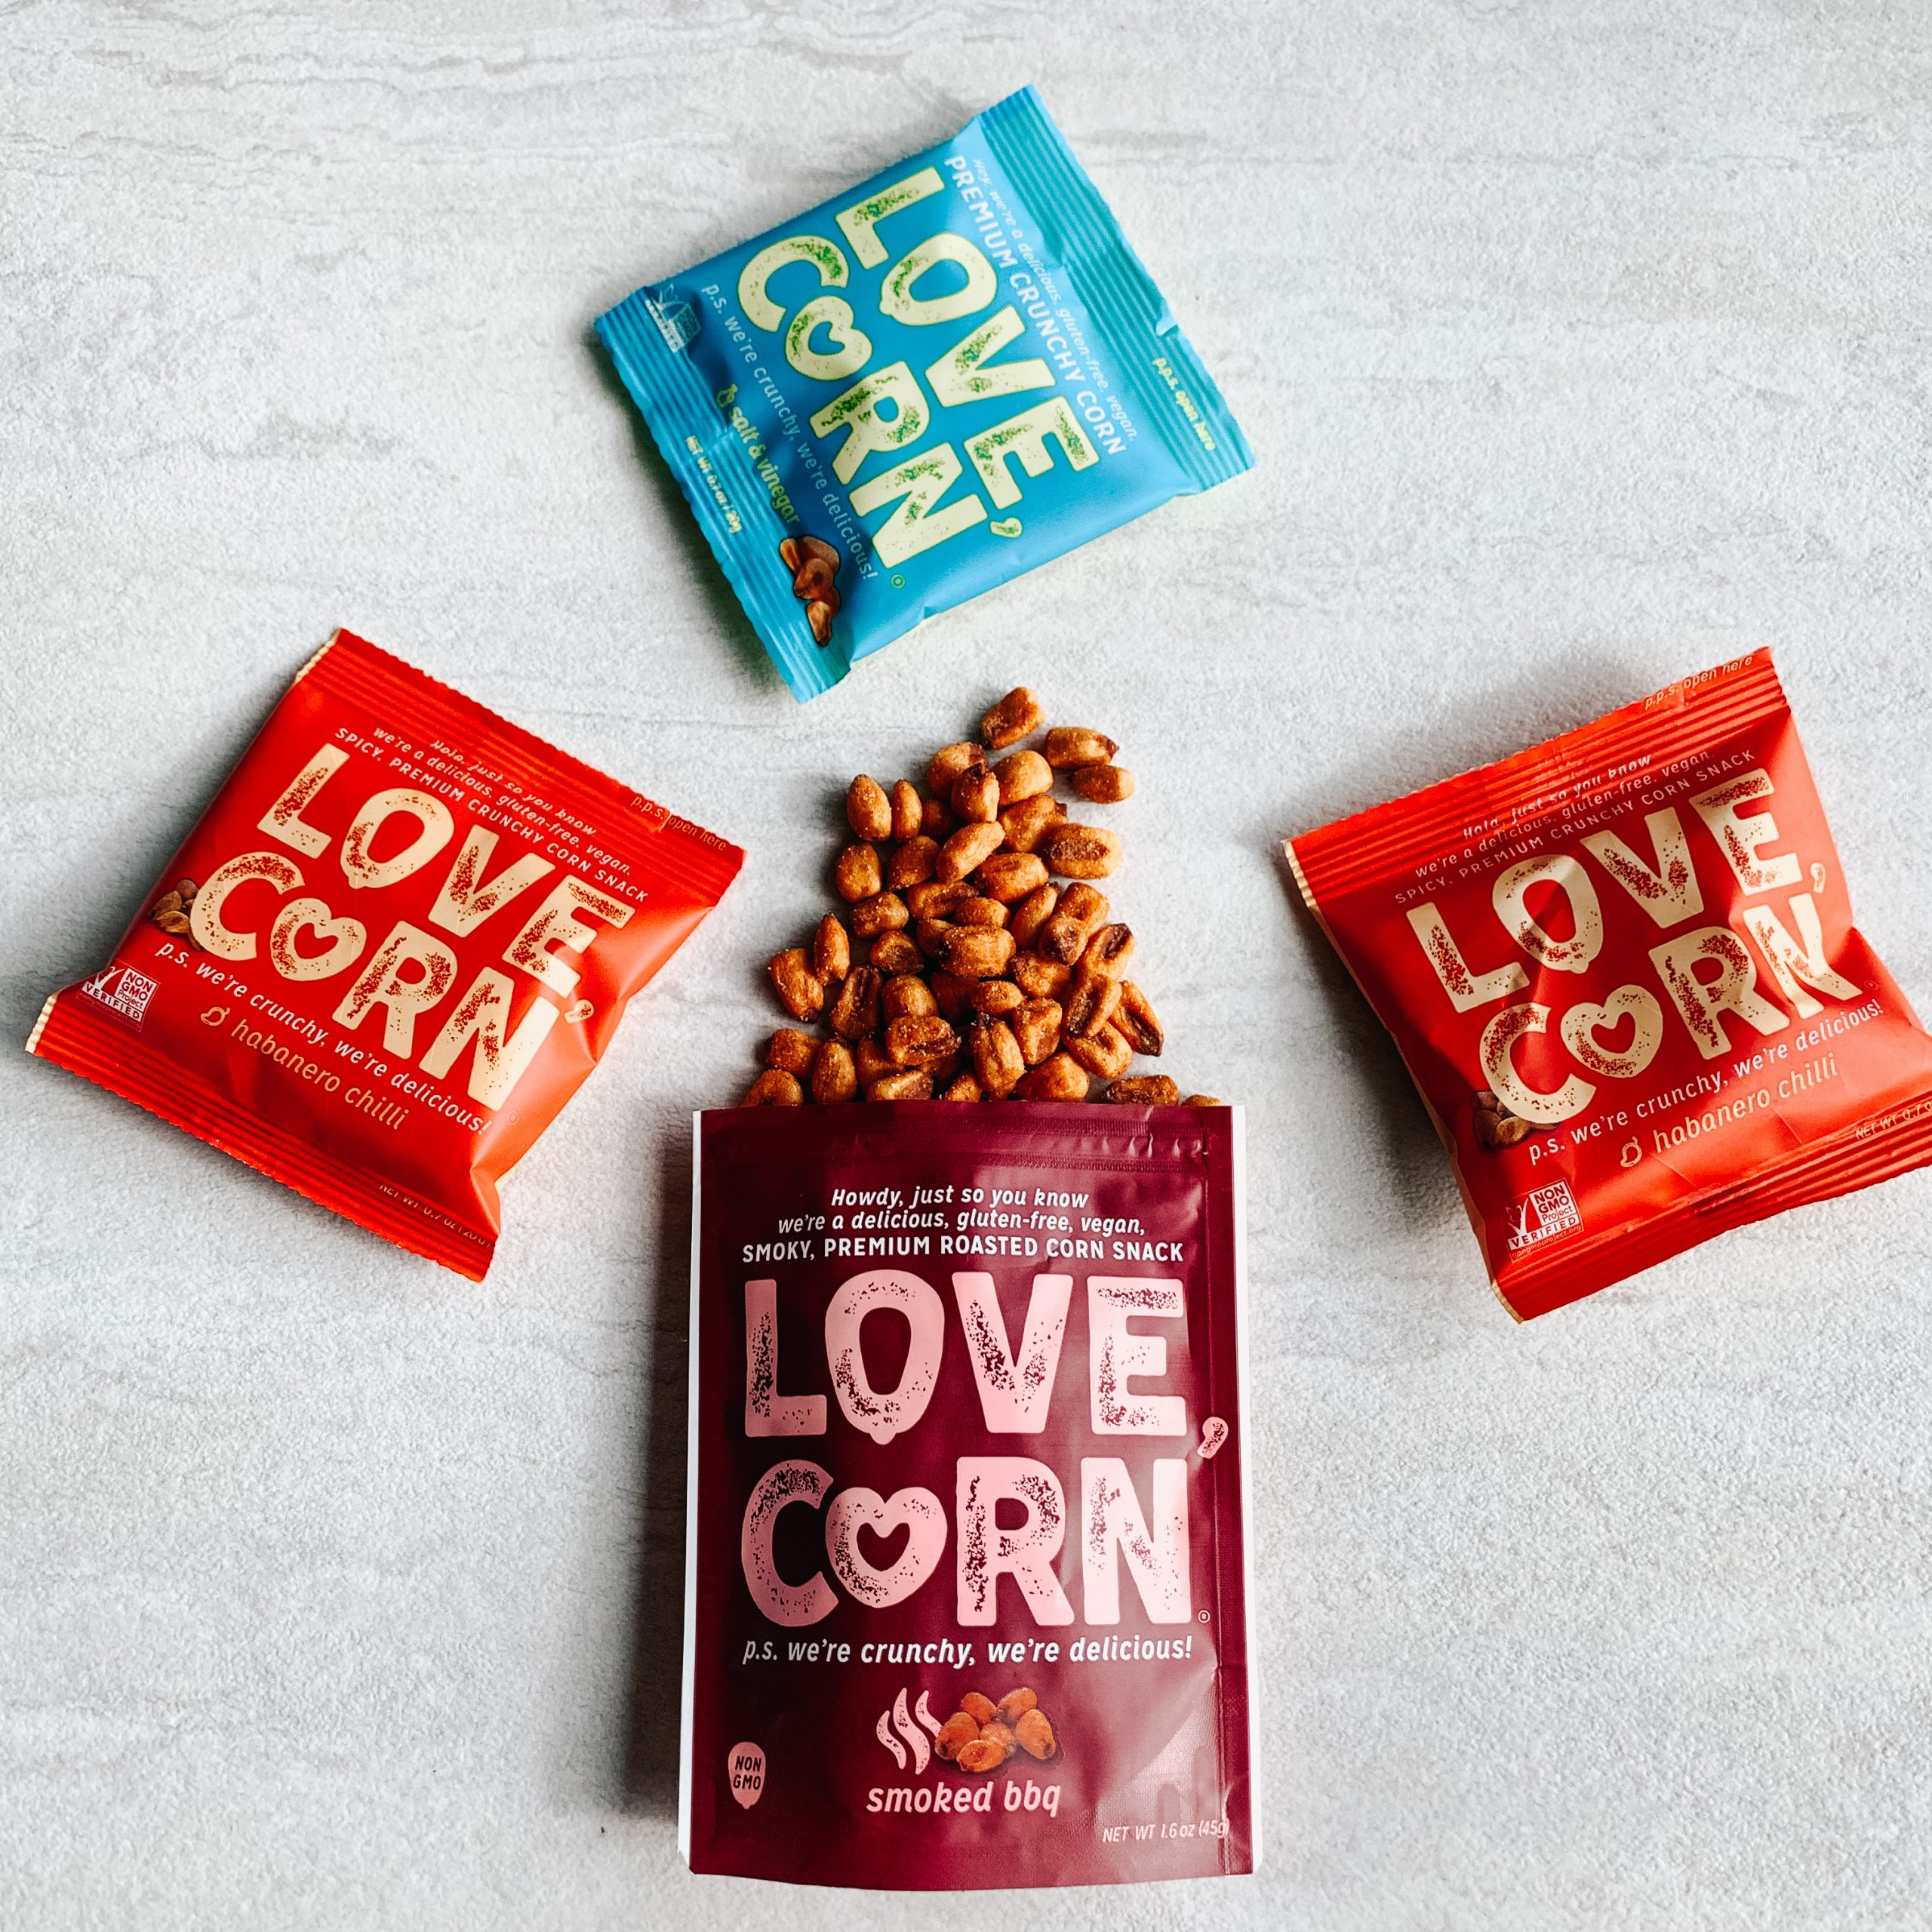 Snack Review: Love Corn Snacks Disappear Quick!